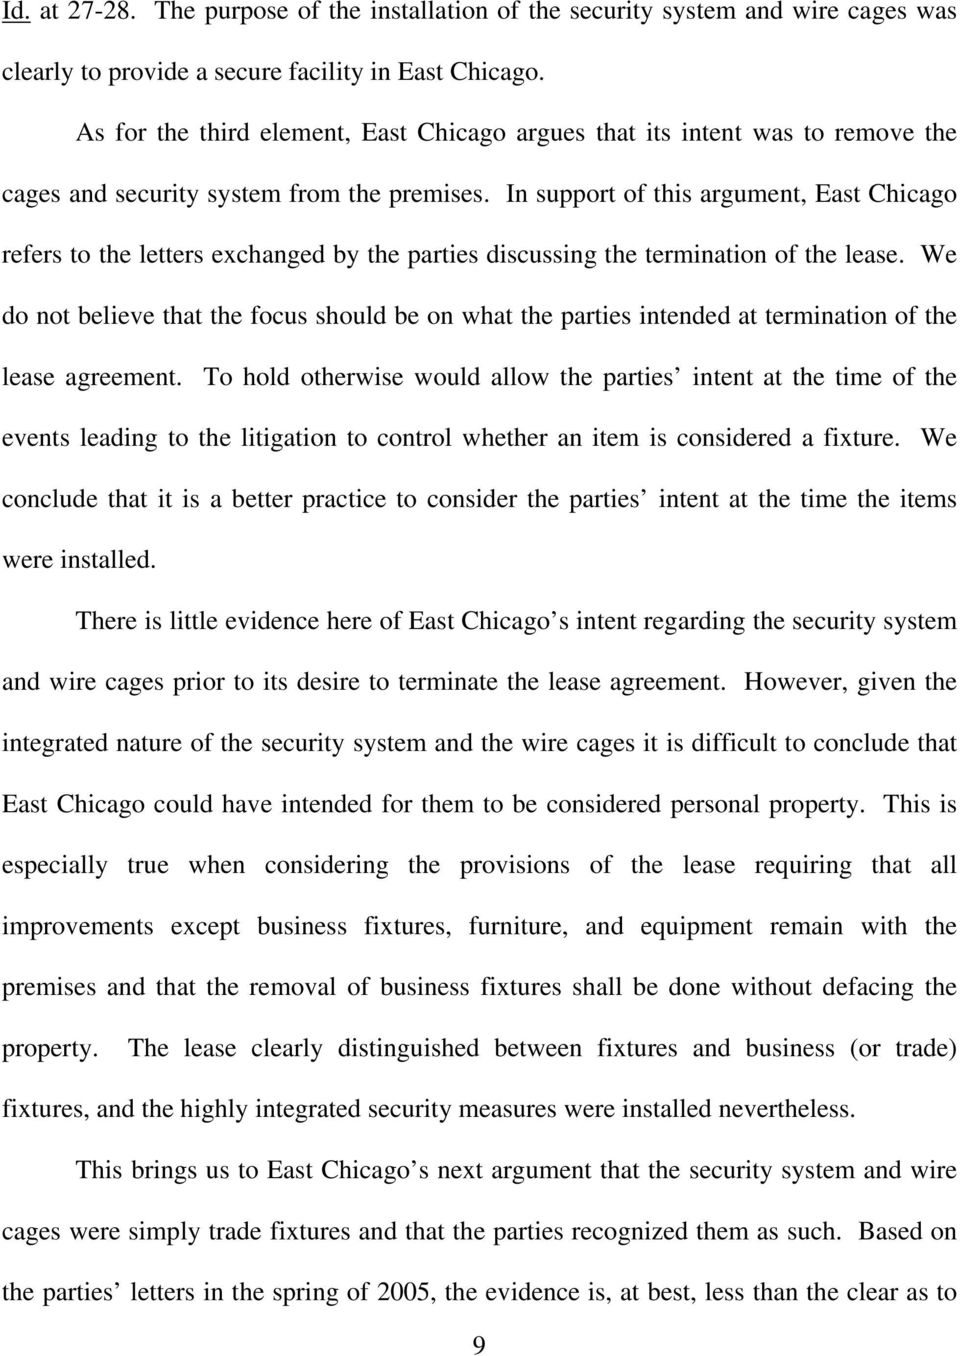 In support of this argument, East Chicago refers to the letters exchanged by the parties discussing the termination of the lease.